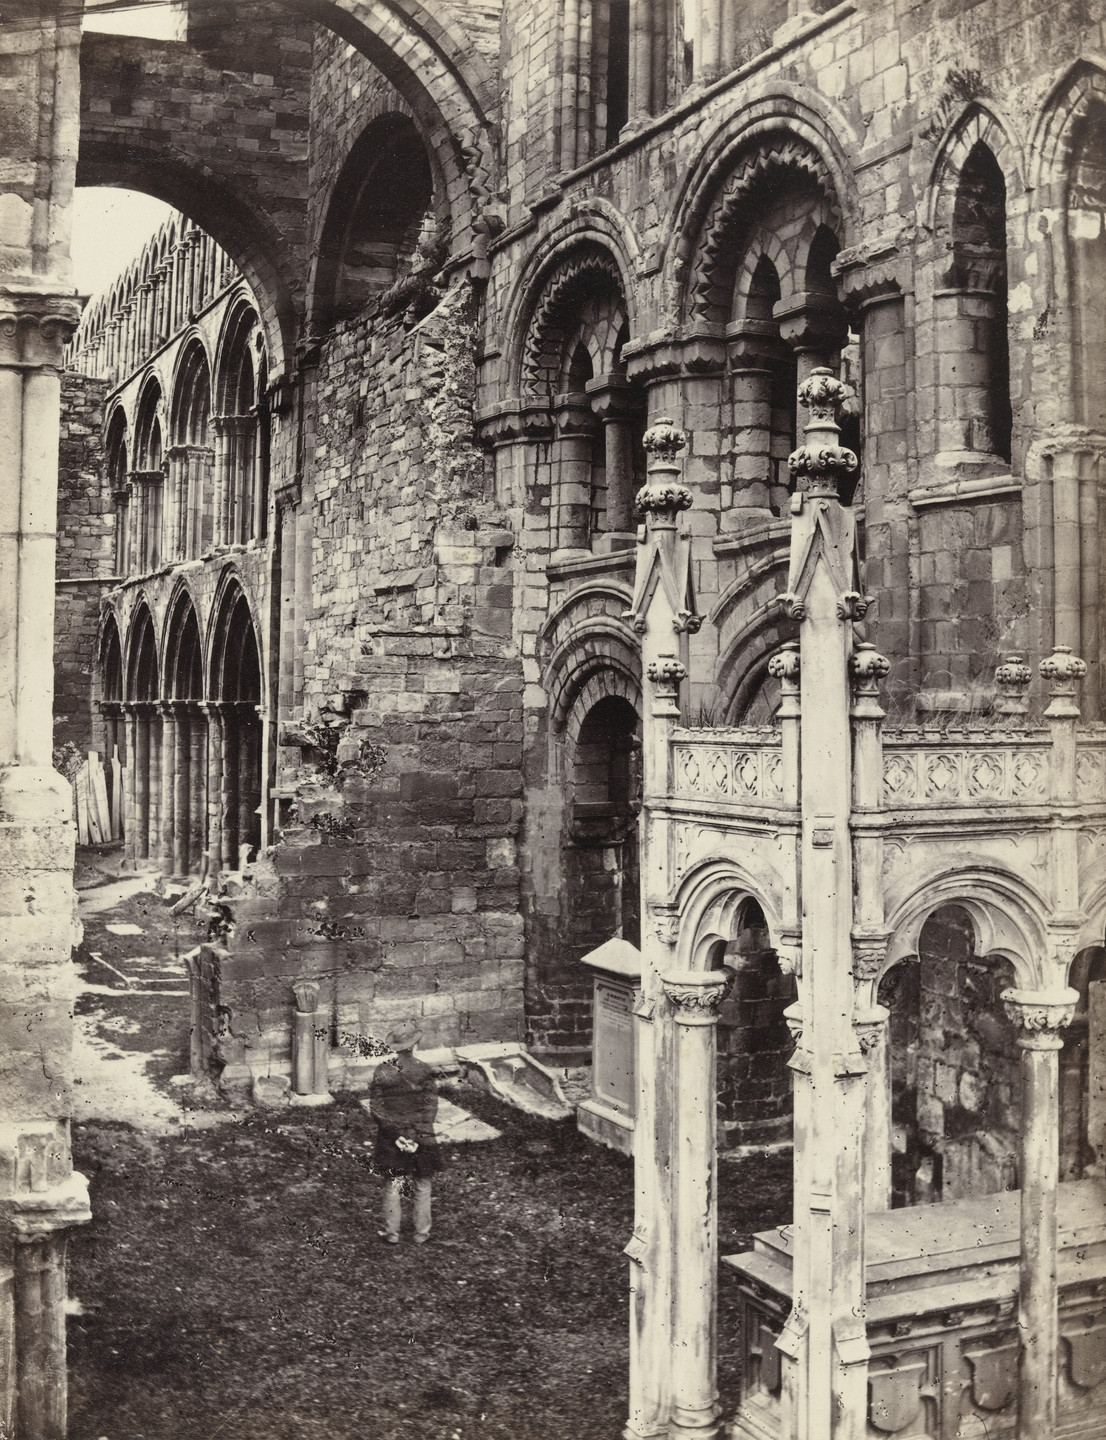 Francis Frith. Idburg Abbey, Interior. c. 1860